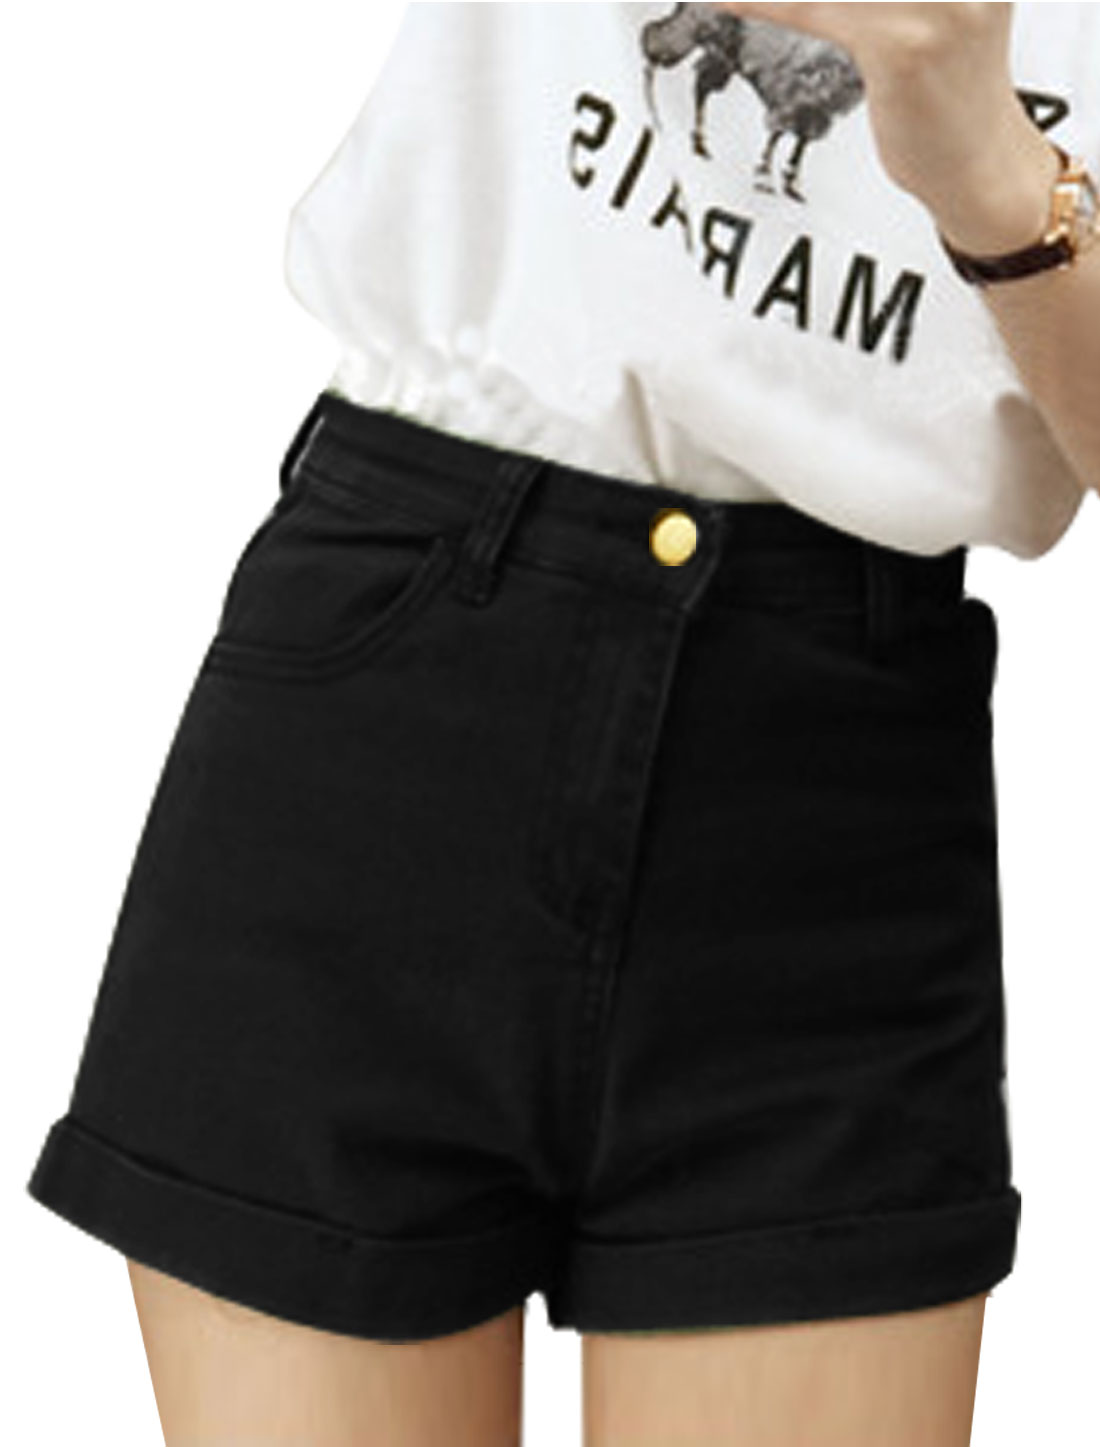 Women's Zip Fly Single Button Closure Roll-up Hem Shorts Black S